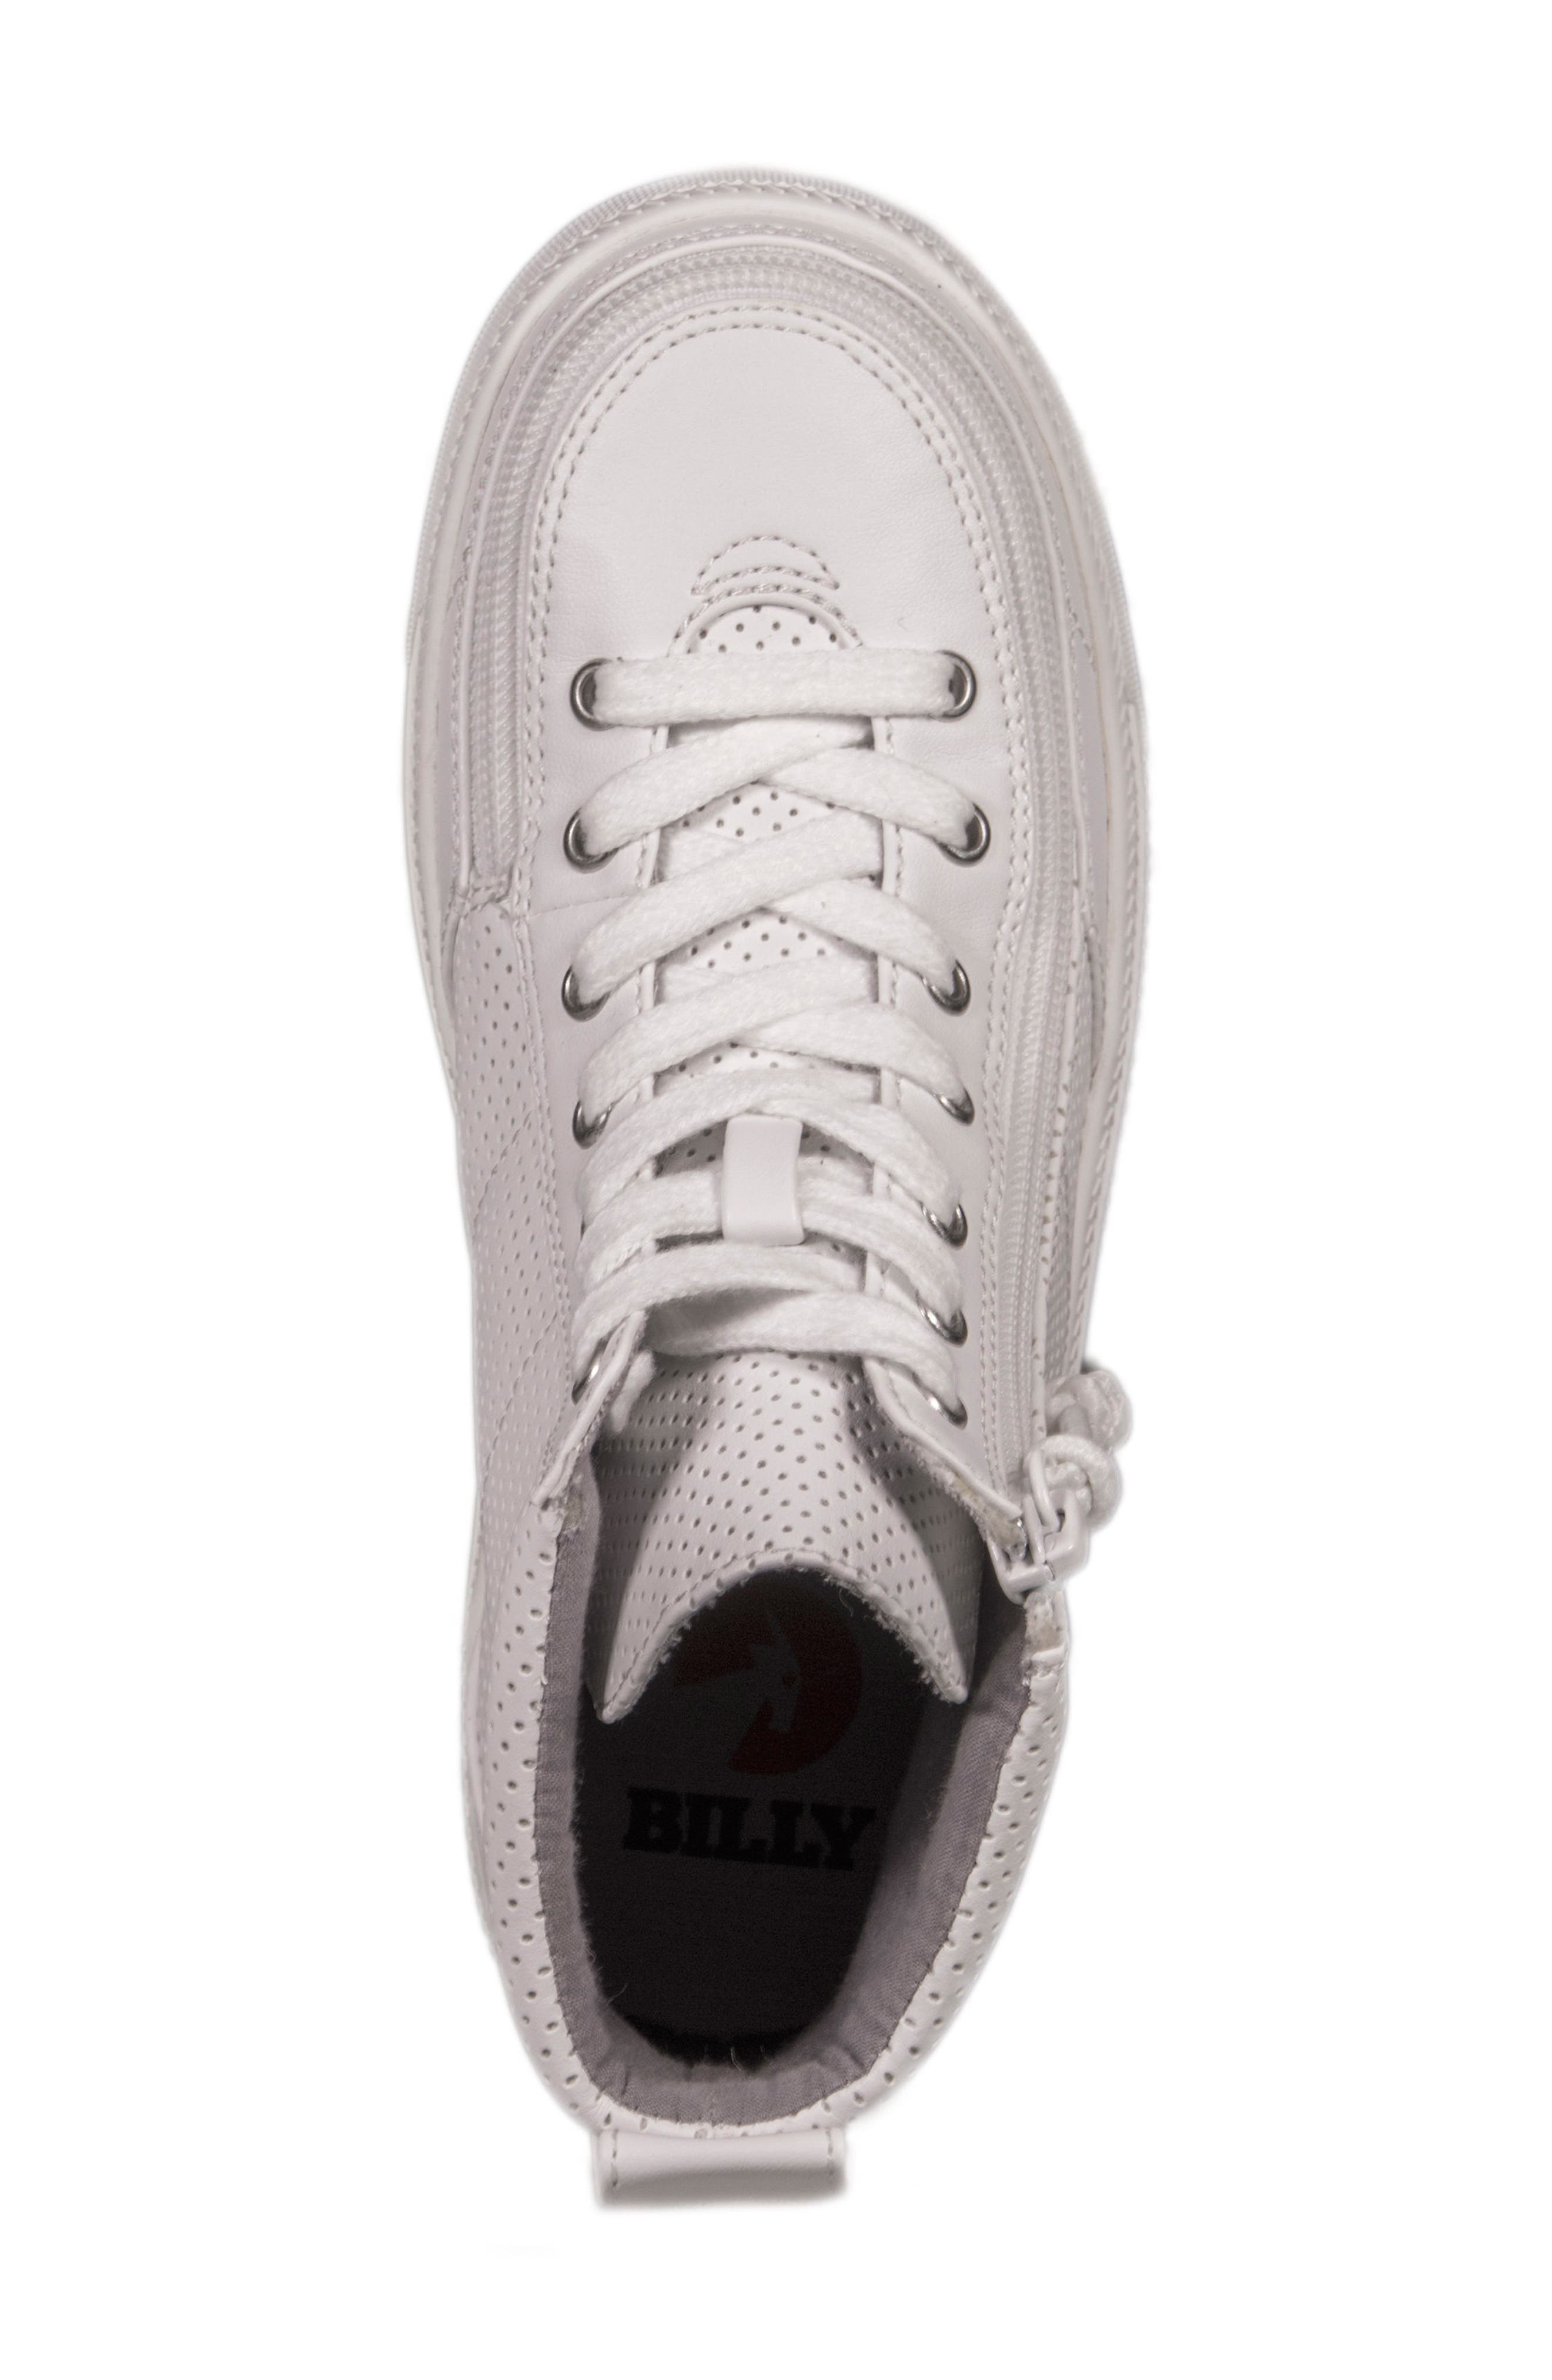 Zip Around Perforated High Top Sneaker,                             Alternate thumbnail 5, color,                             White Perforated